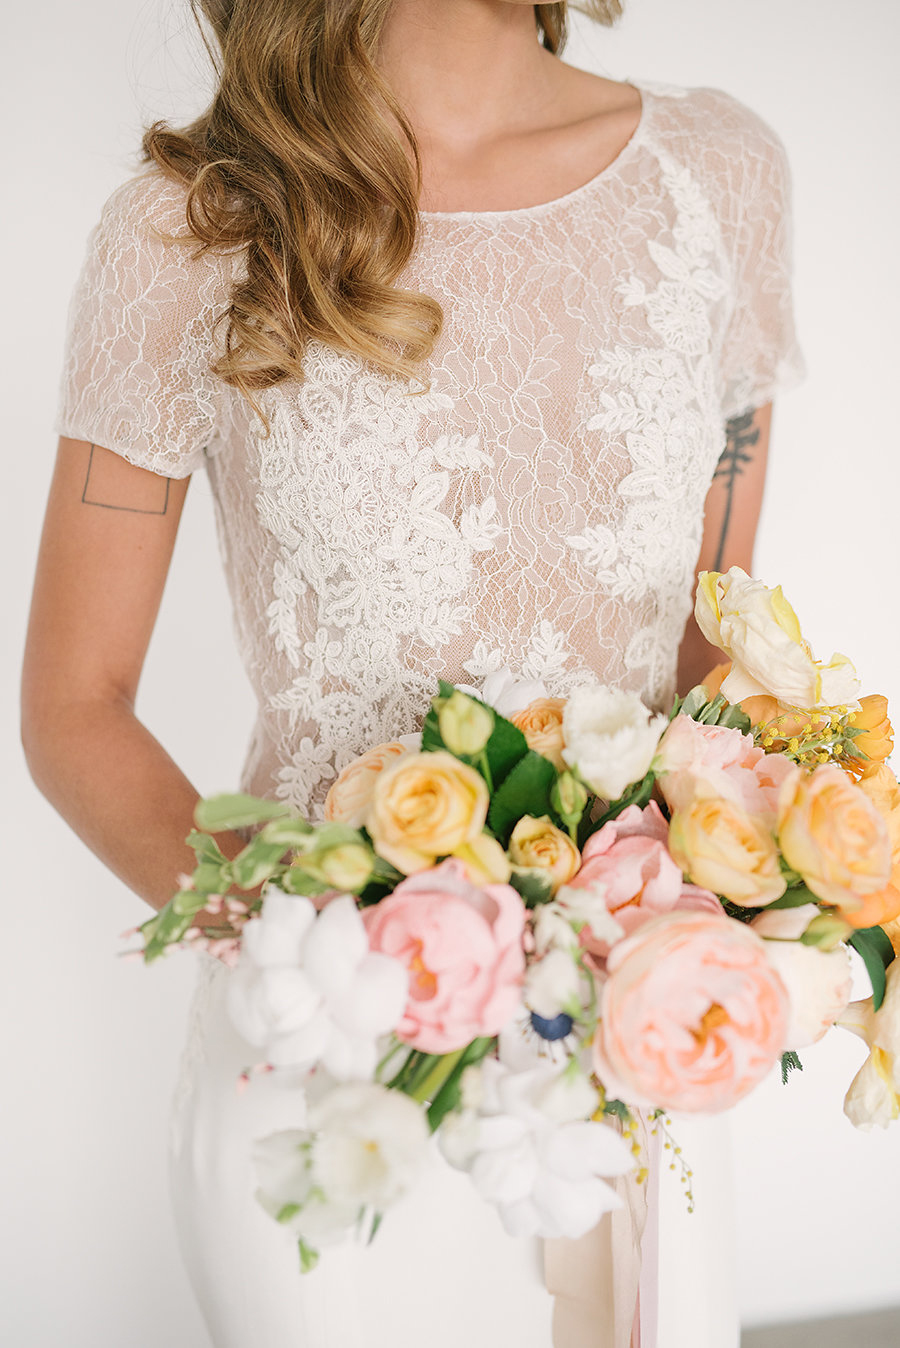 lace wedding dress details - photo by Ashlee Brooke Photography http://ruffledblog.com/summertime-citrus-wedding-inspiration